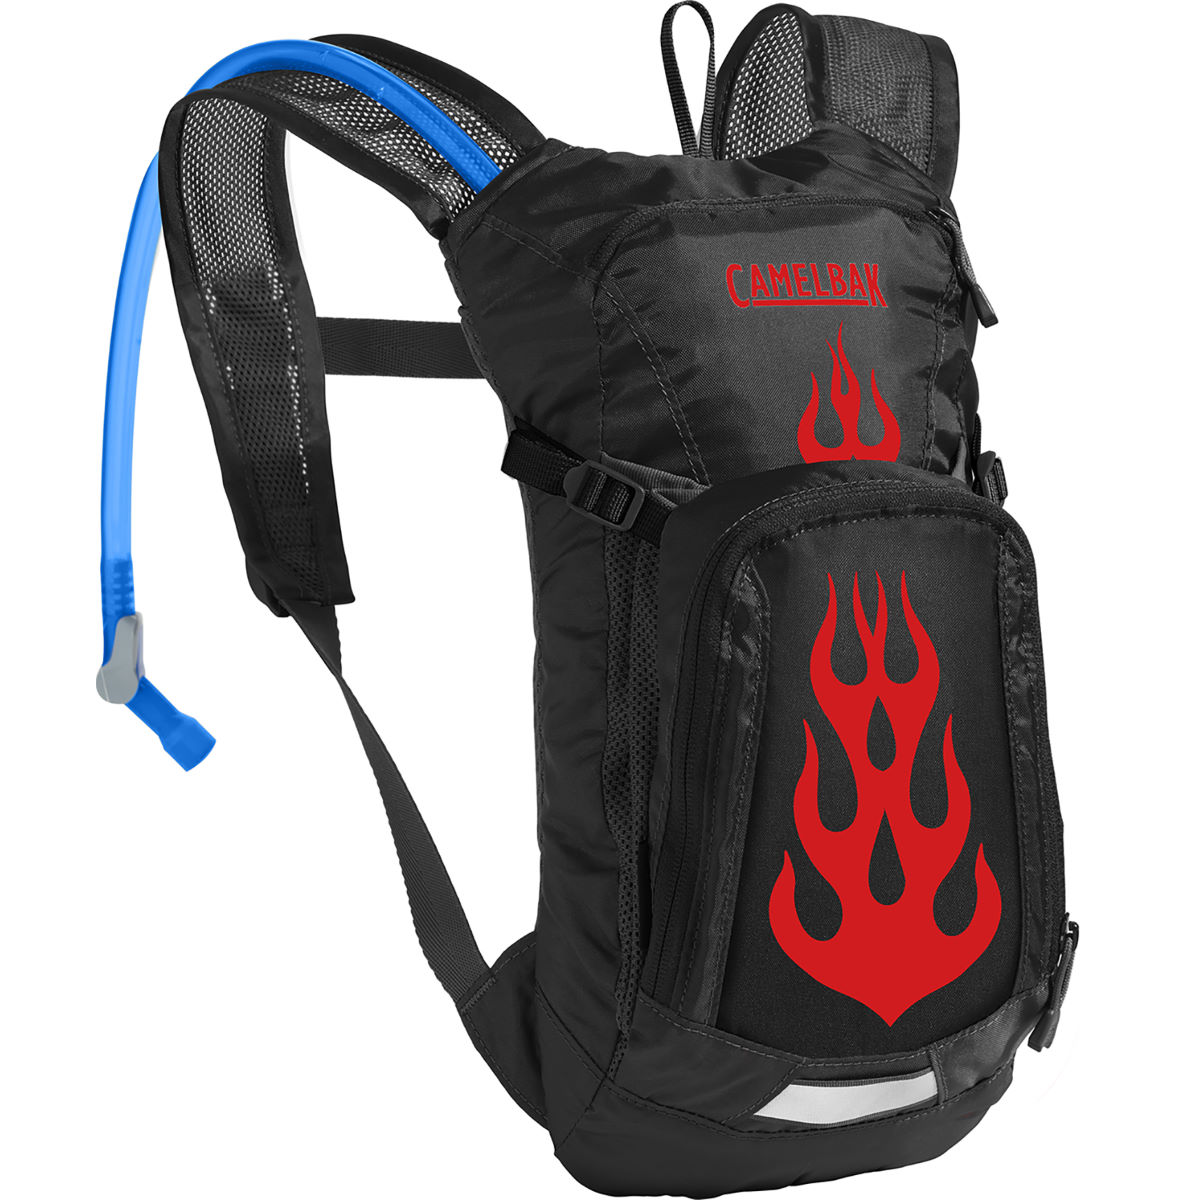 Sac d'hydratation Enfant Camelbak Mini MULE - One Size Black/Flames